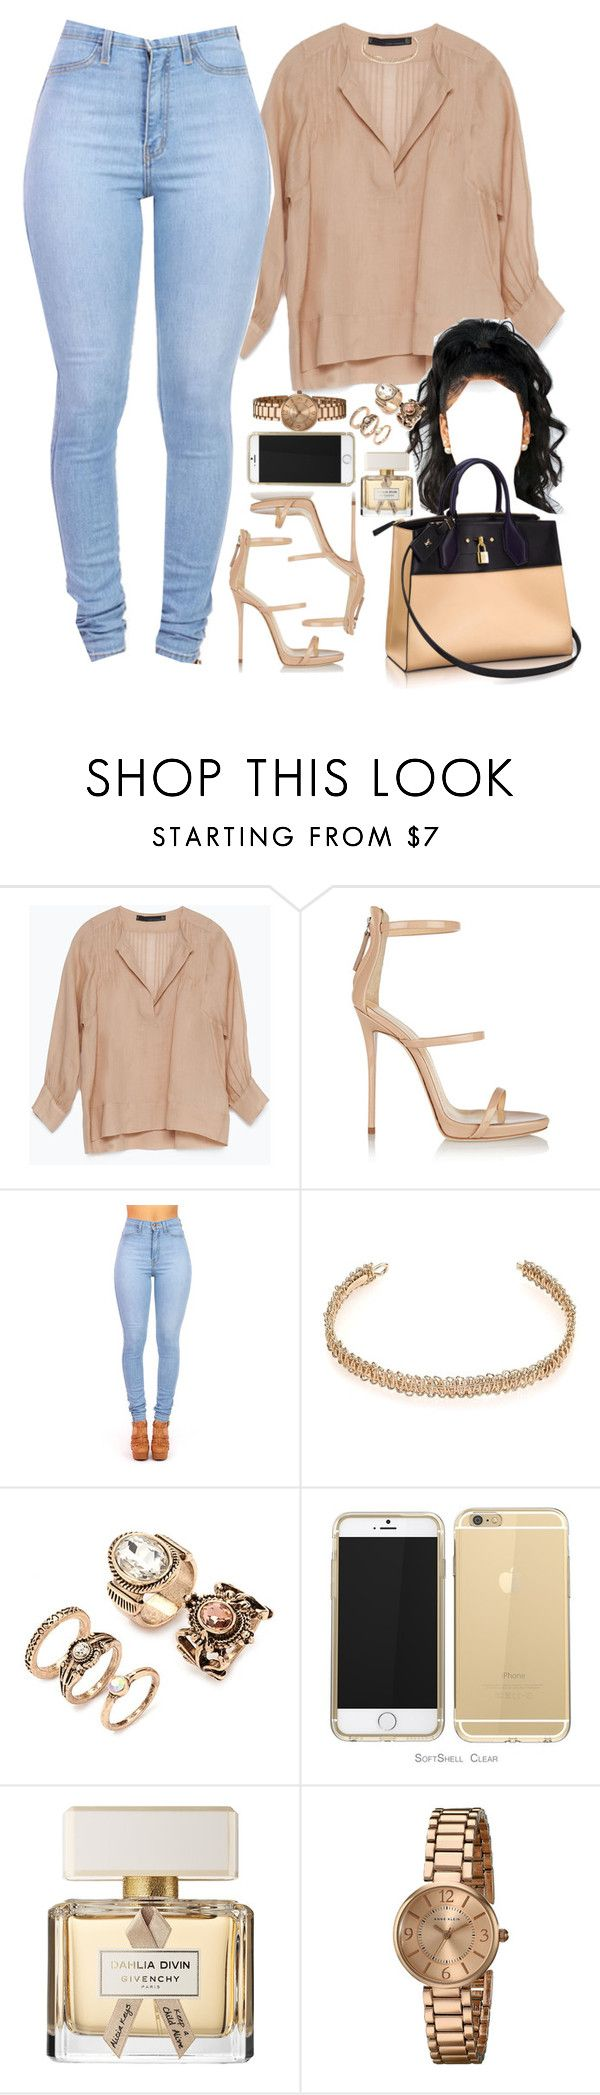 """24 December, 2015"" by jamilah-rochon ❤ liked on Polyvore featuring Zara, Giuseppe Zanotti, Maison Margiela, Louis Vuitton, Forever 21, Givenchy and Anne Klein"